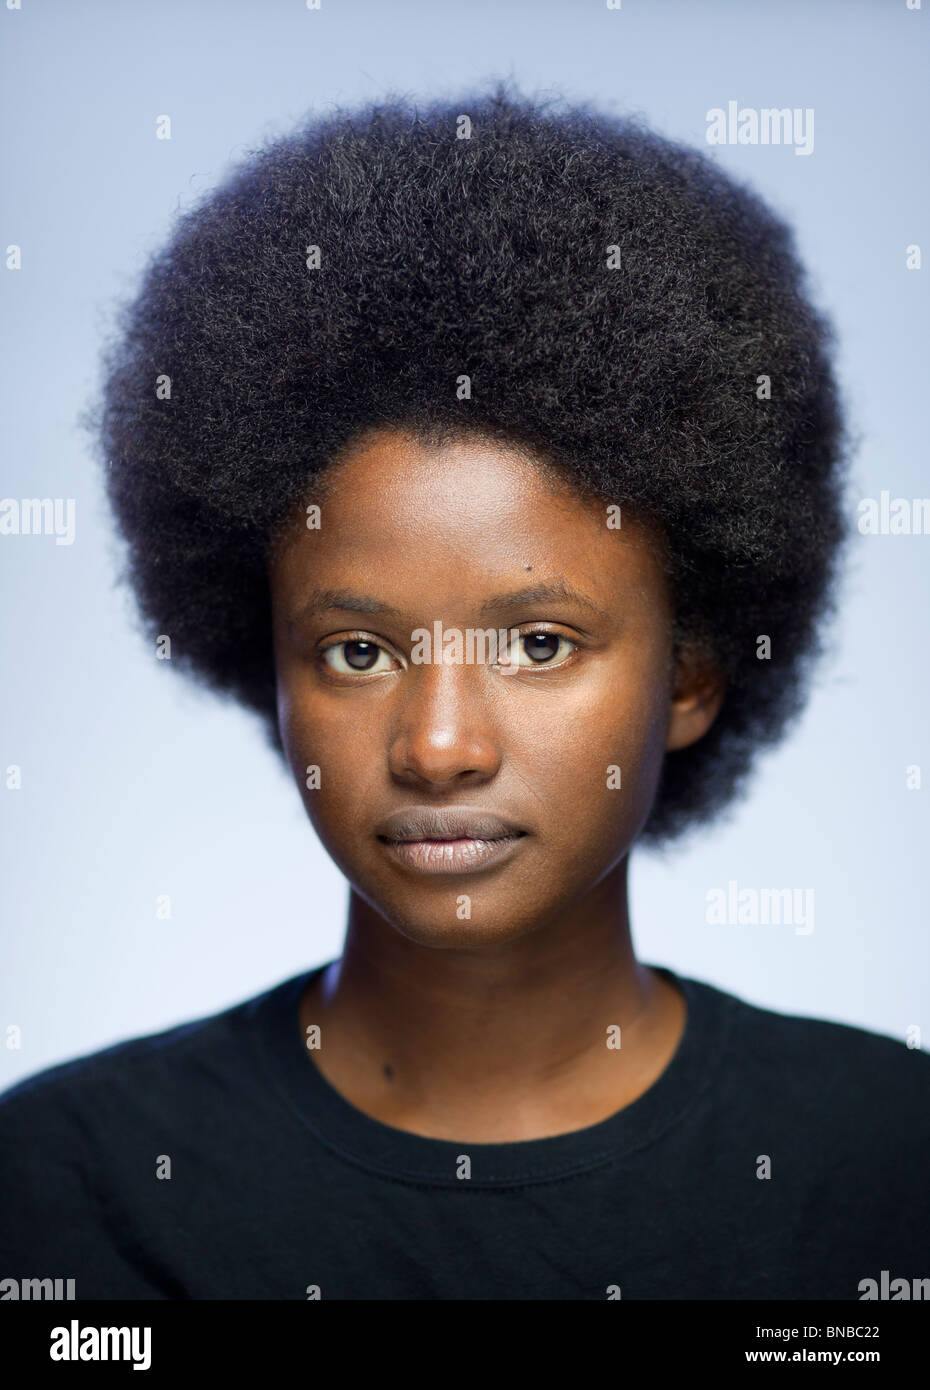 Close-up portrait of young woman of African descent with an afro staring at camera - Stock Image